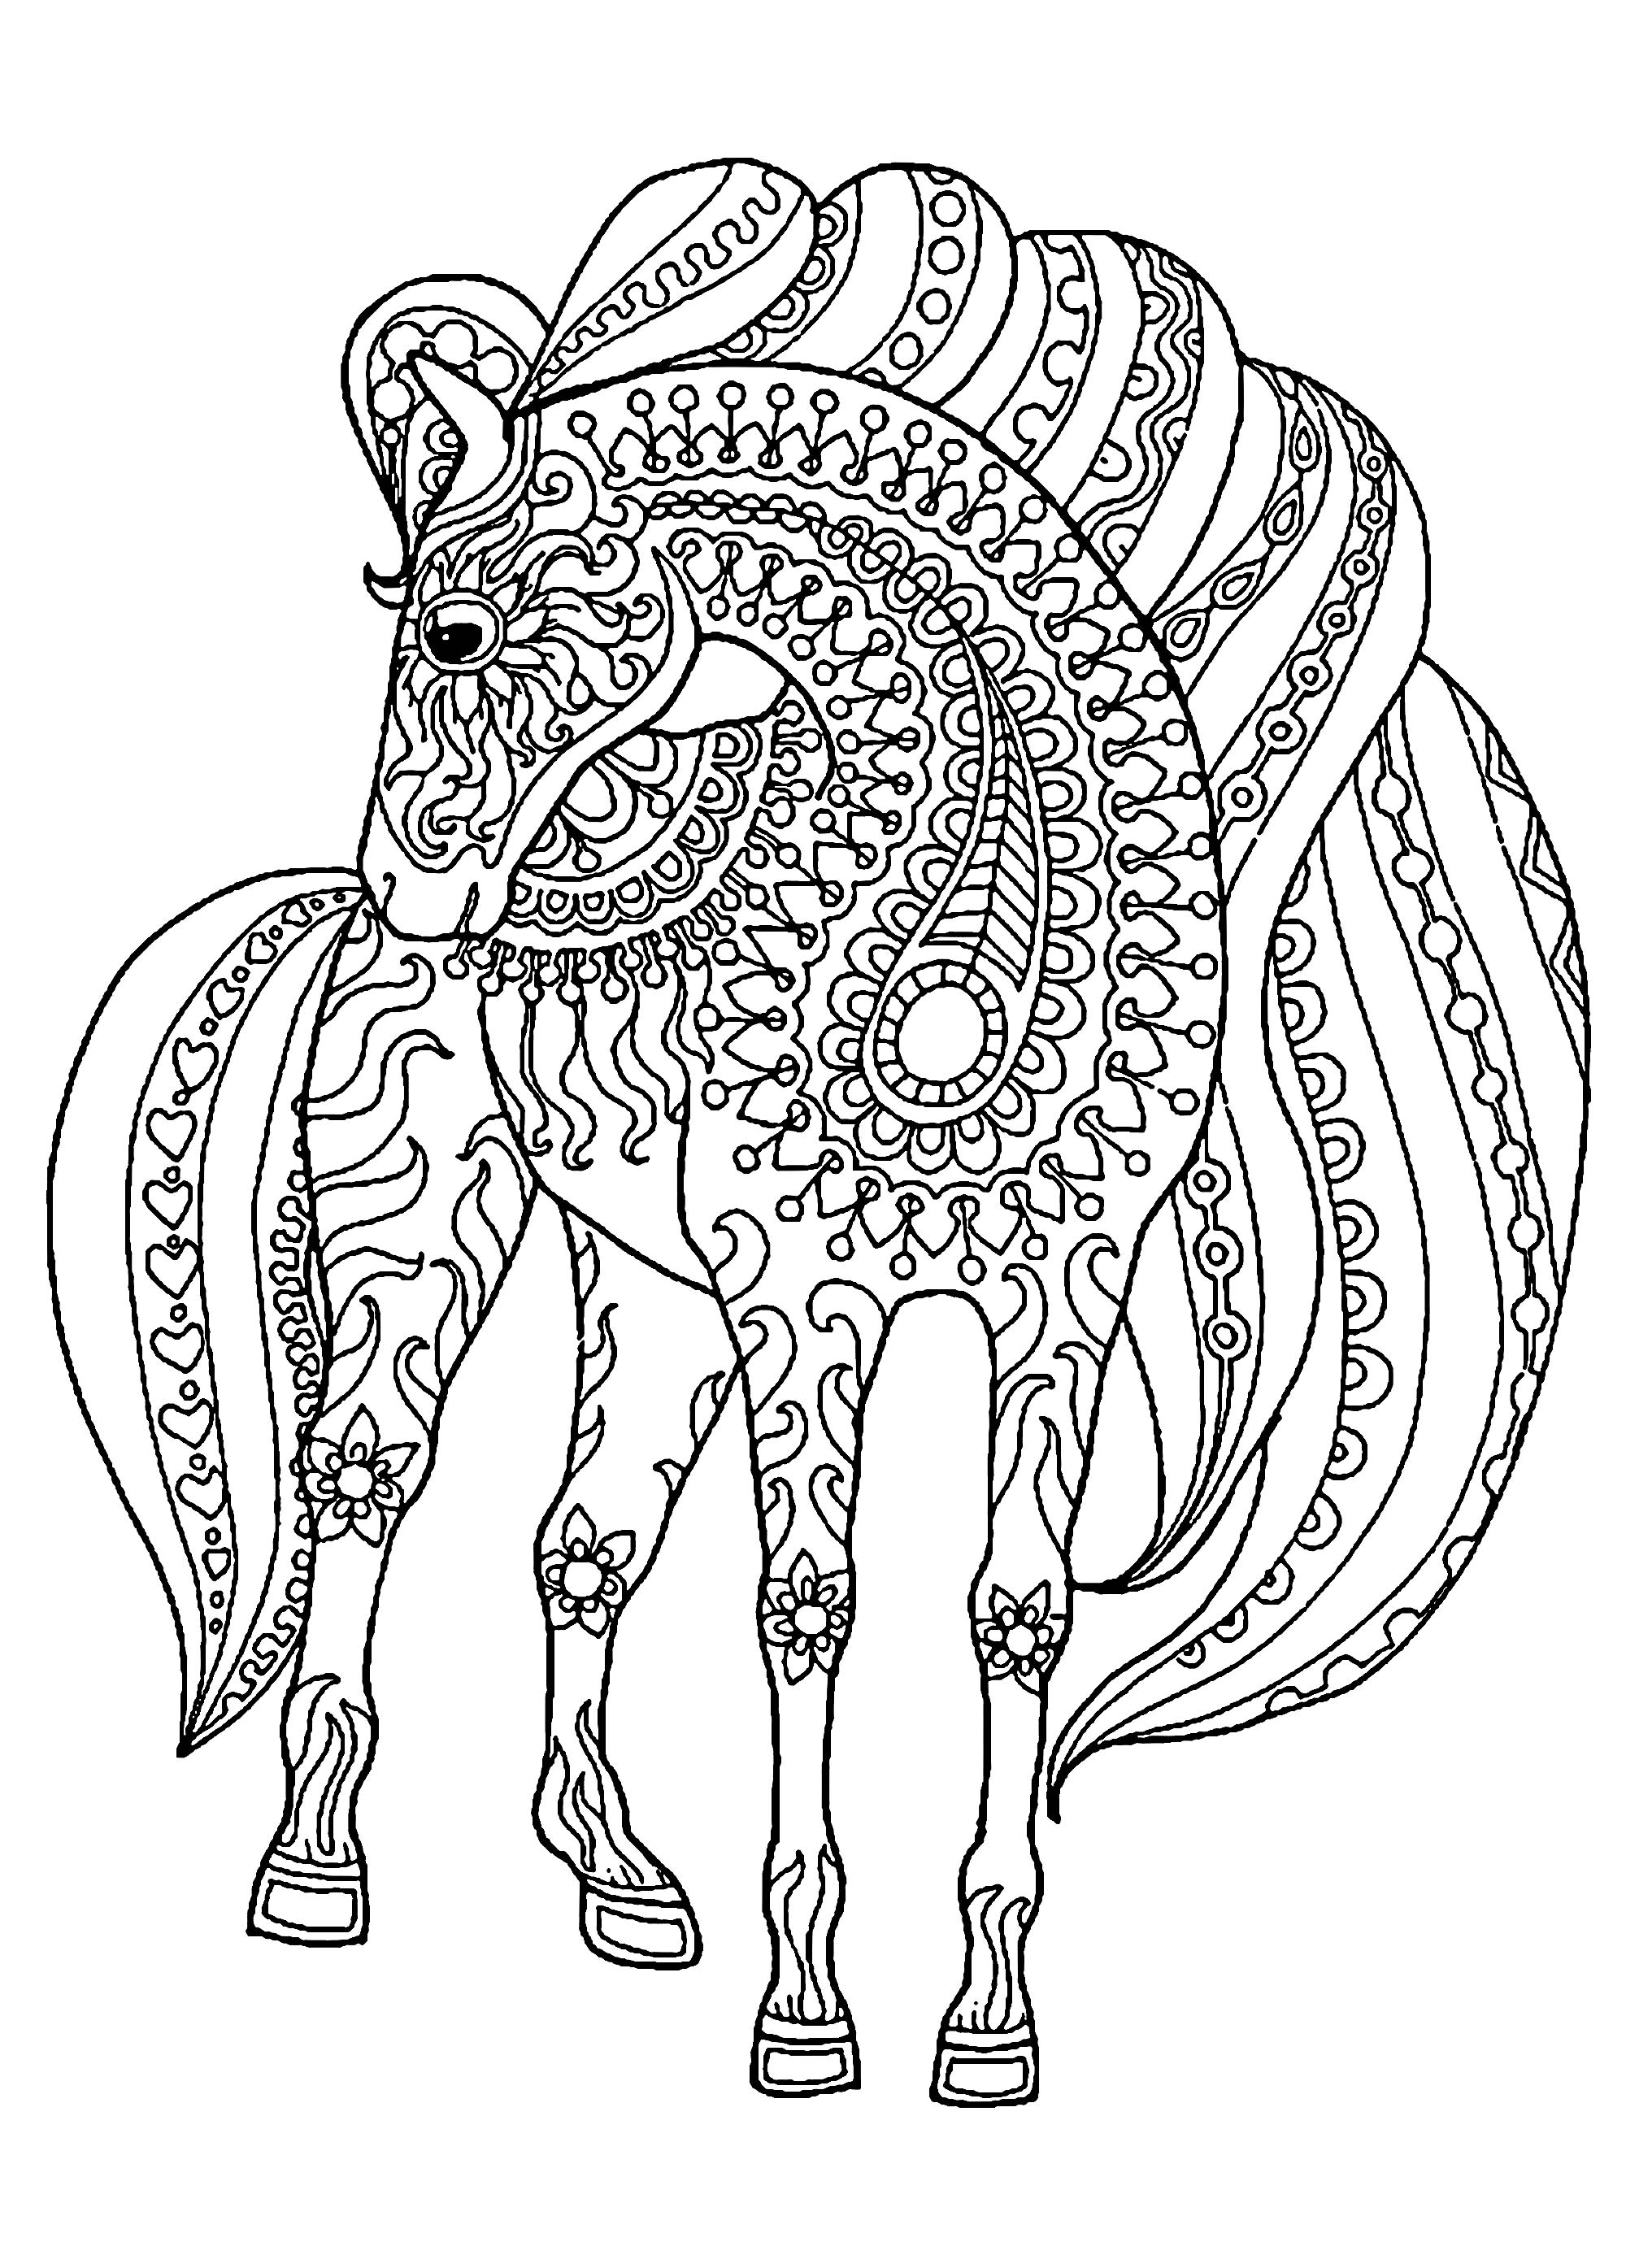 pictures of horses to colour in horse coloring pages for kids coloring pages for kids pictures horses in colour to of